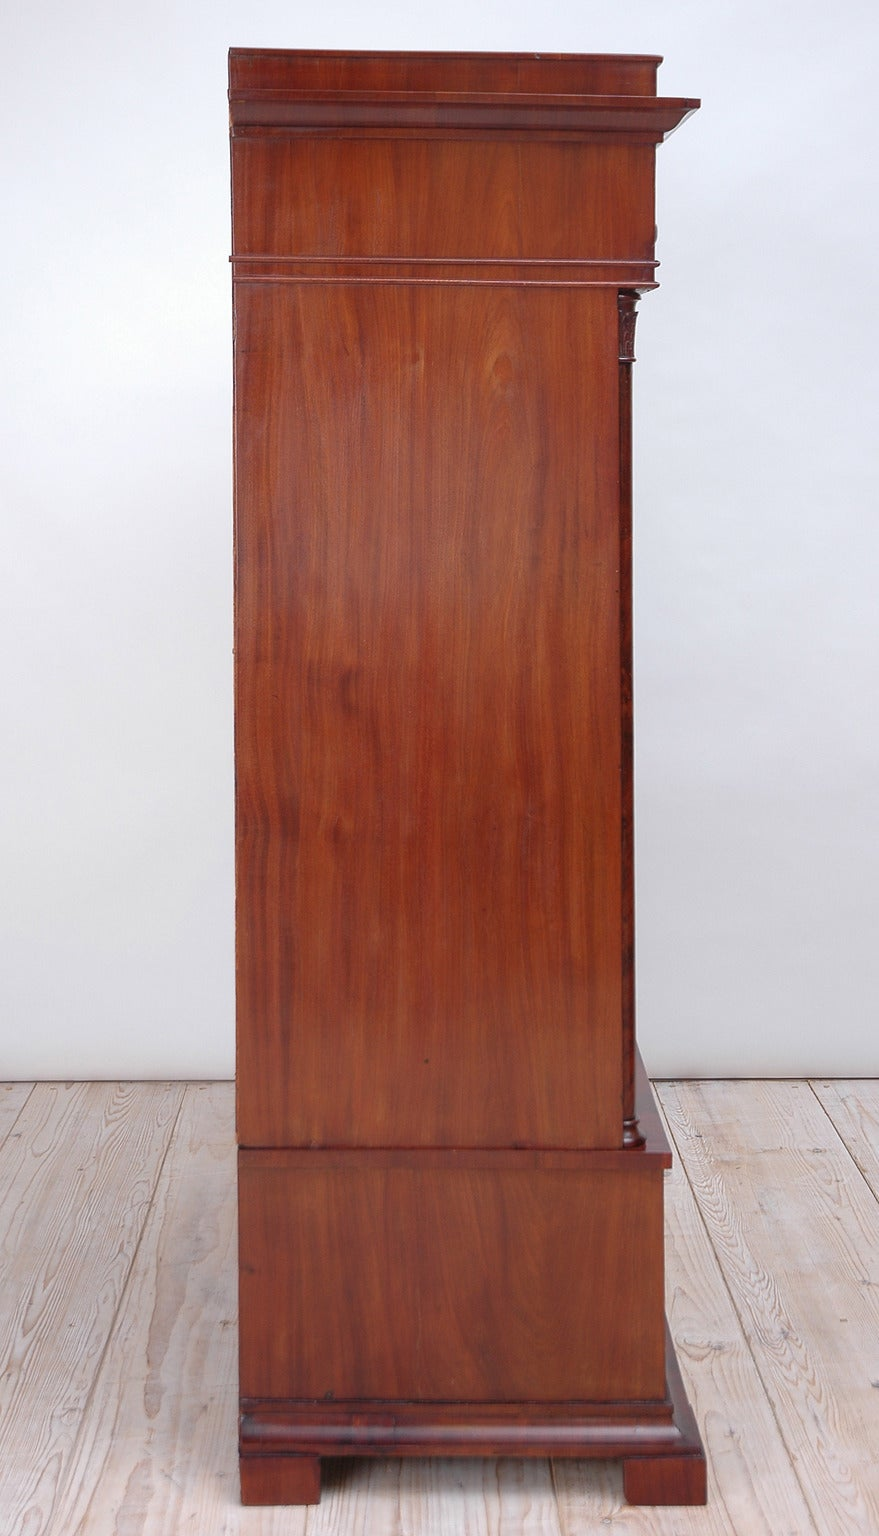 Danish Biedermeier Tall Chest of Drawers in Book-Matched Mahogany, Copenhagen, c. 1820 For Sale